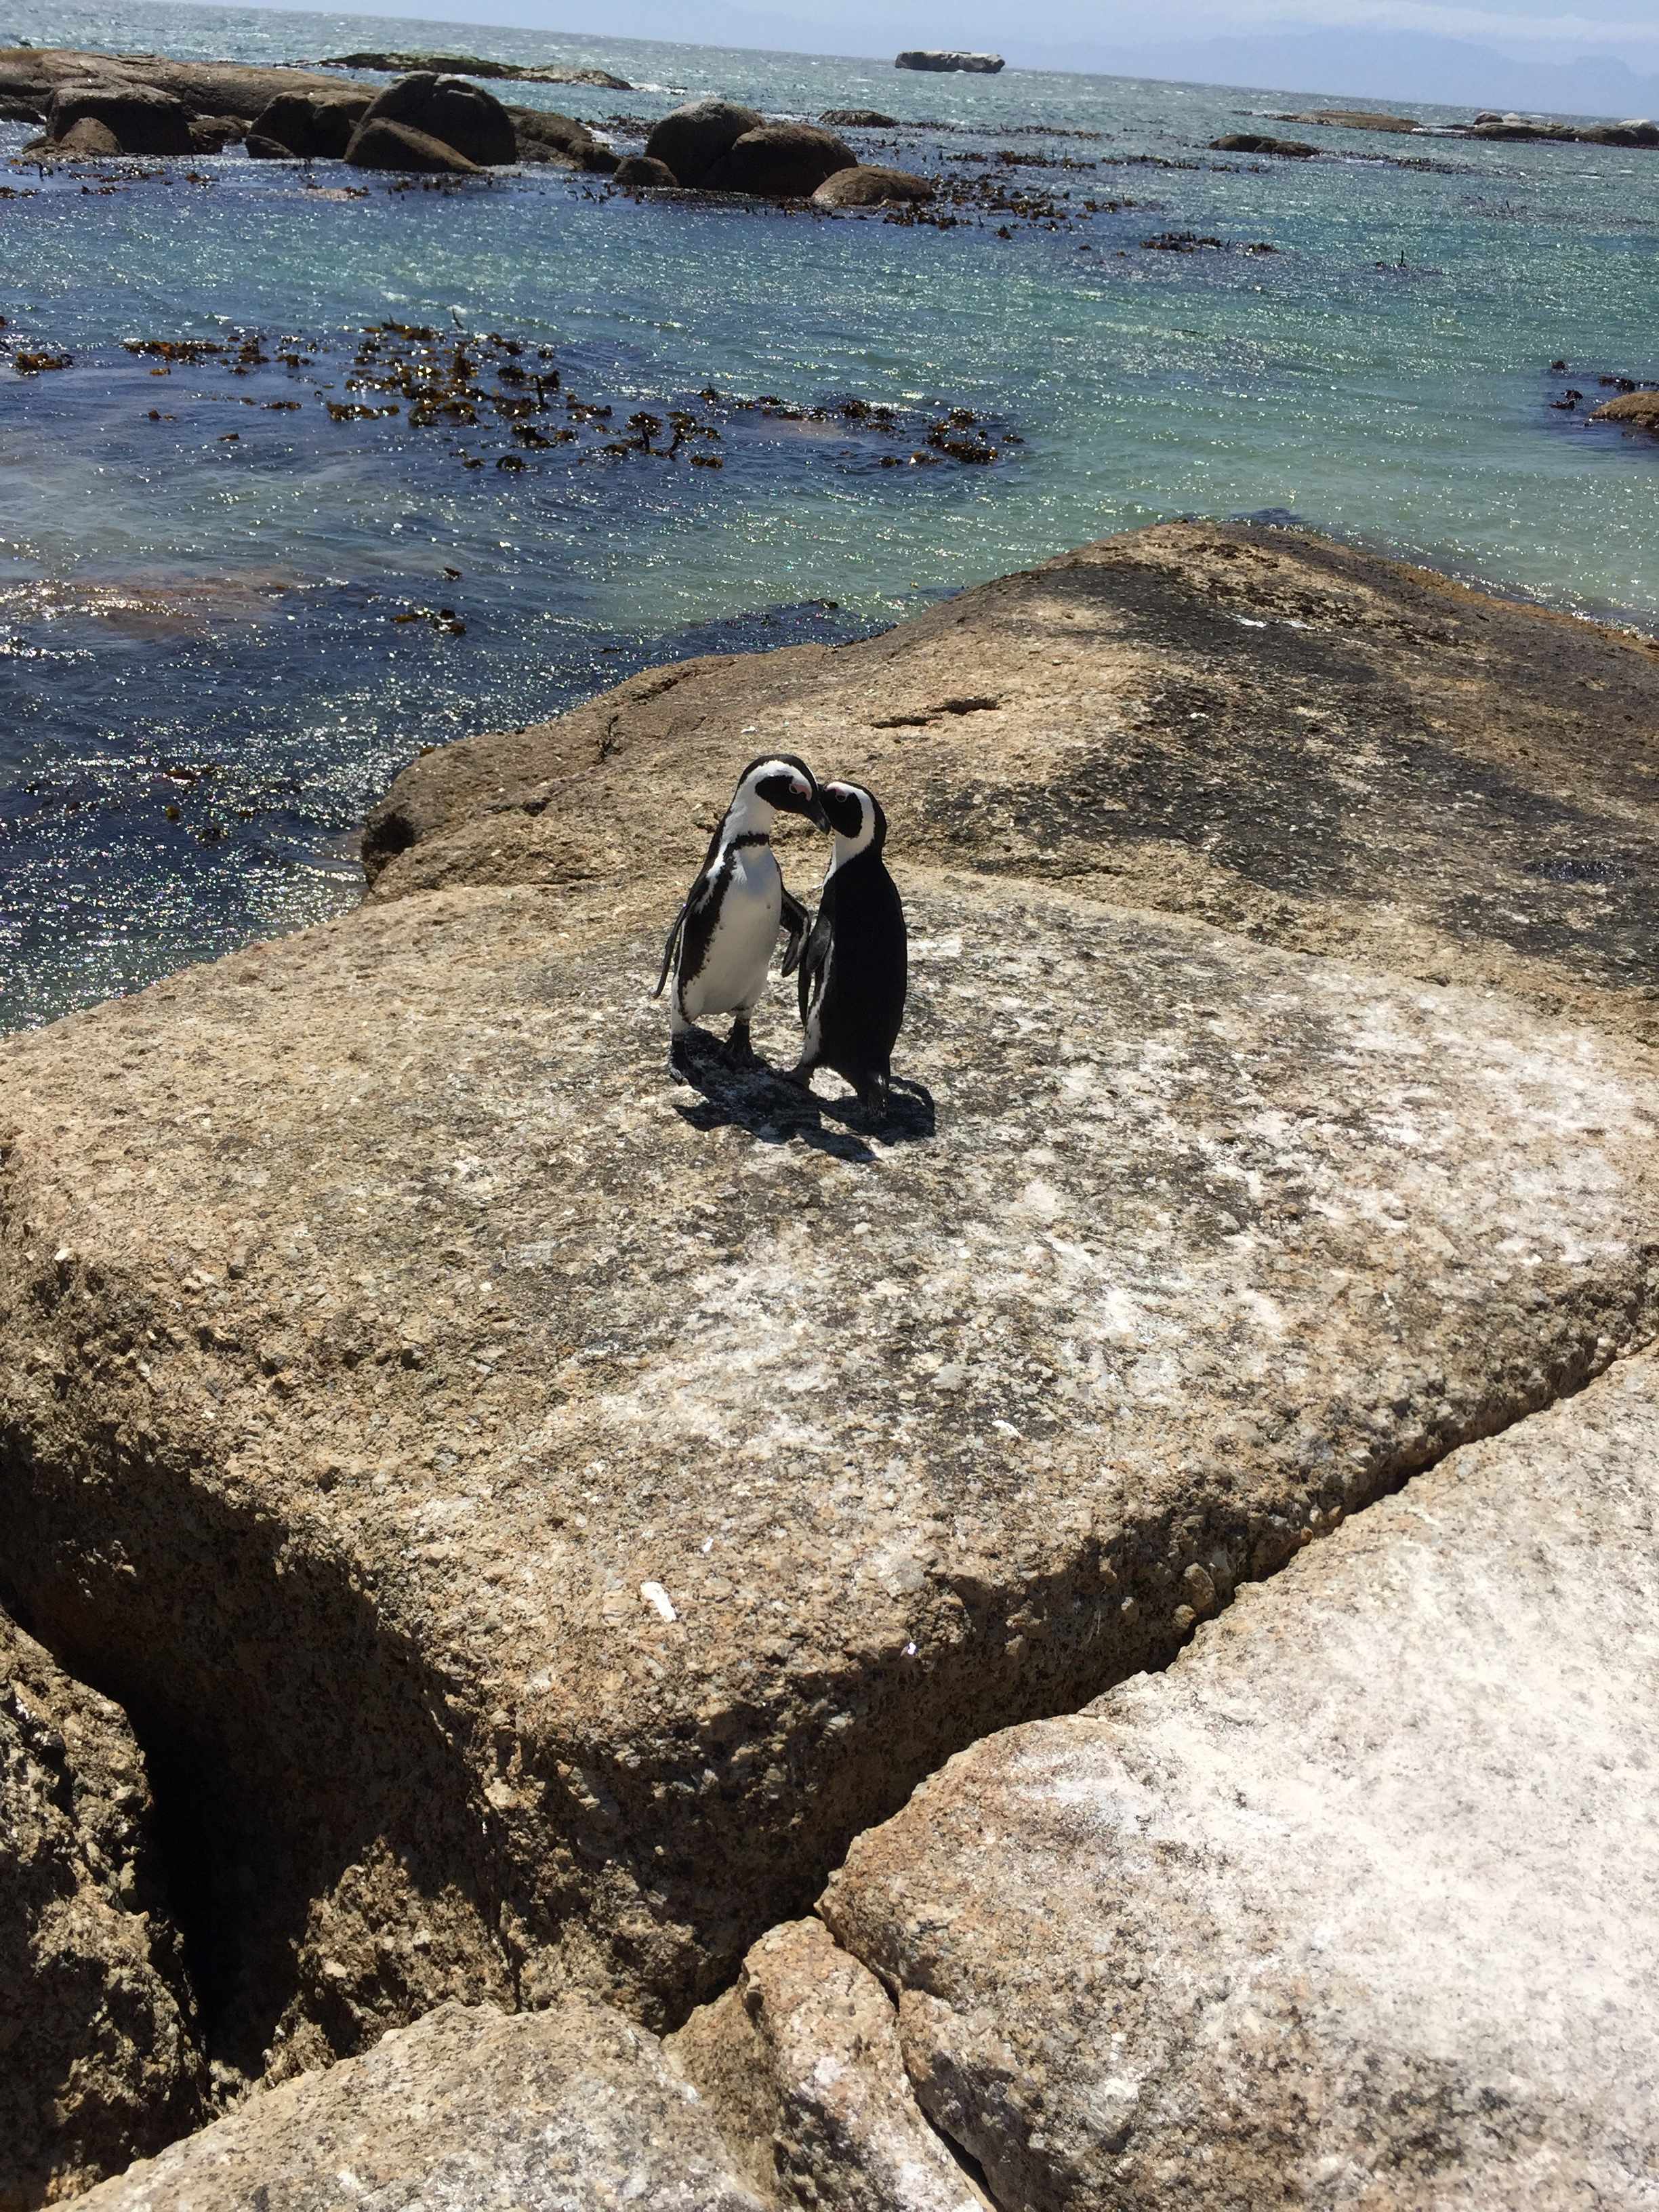 Two penguins were dancing around together. It was adorable.